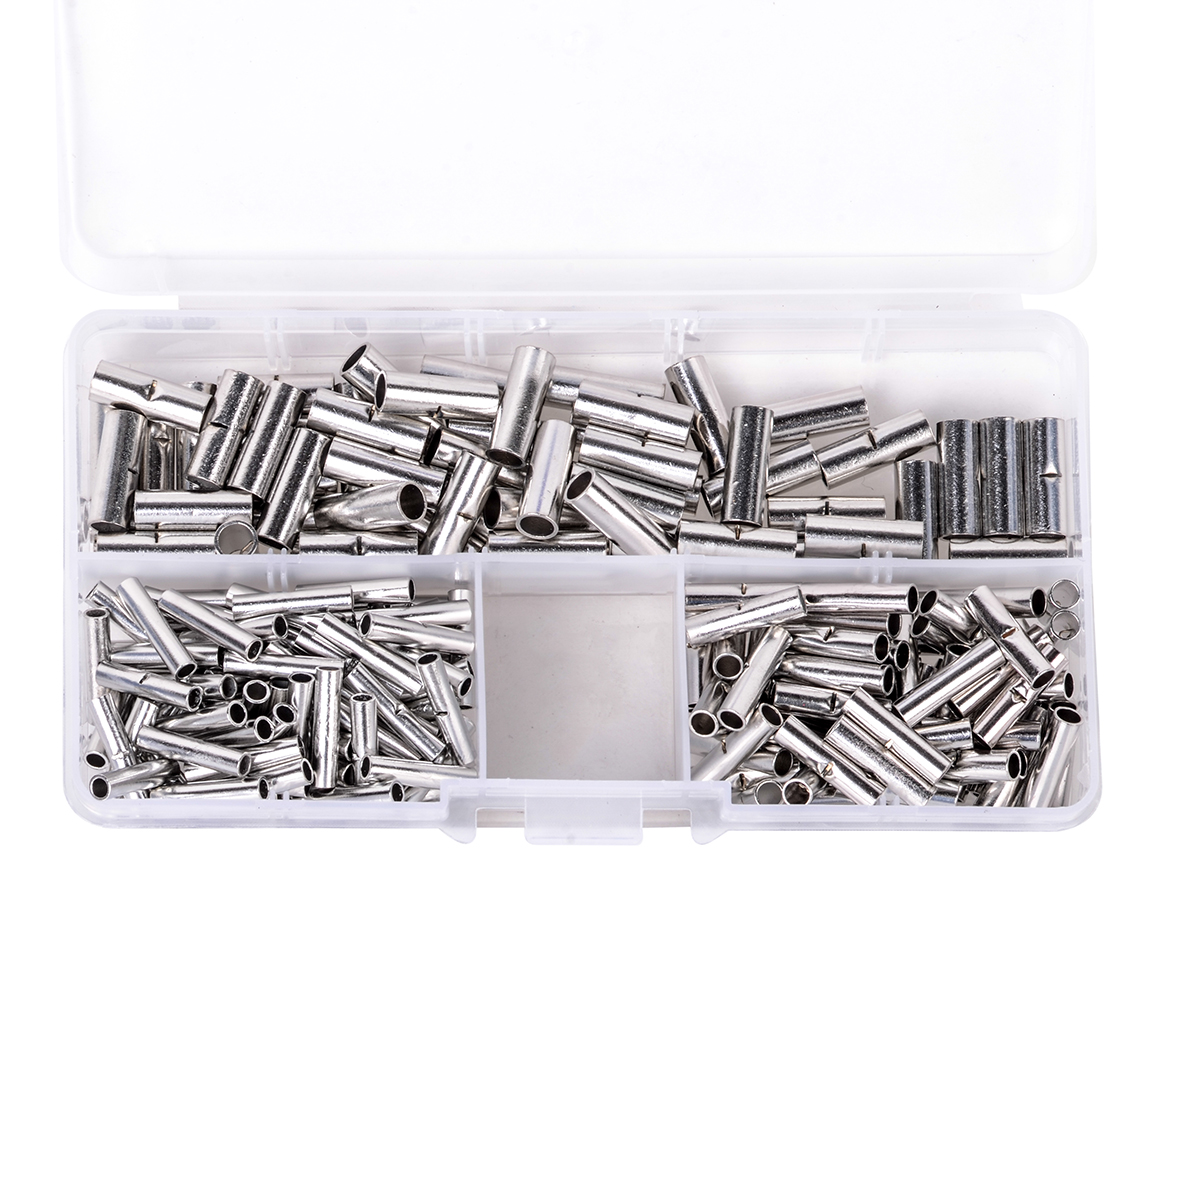 200pcs Copper Butt Splice Connectors Solder Crimp Electrical Cable Wire Terminals 22-10AWG with Plastic Box 300pcs set assorted insulated electrical wire crimp terminals connector butt set with box